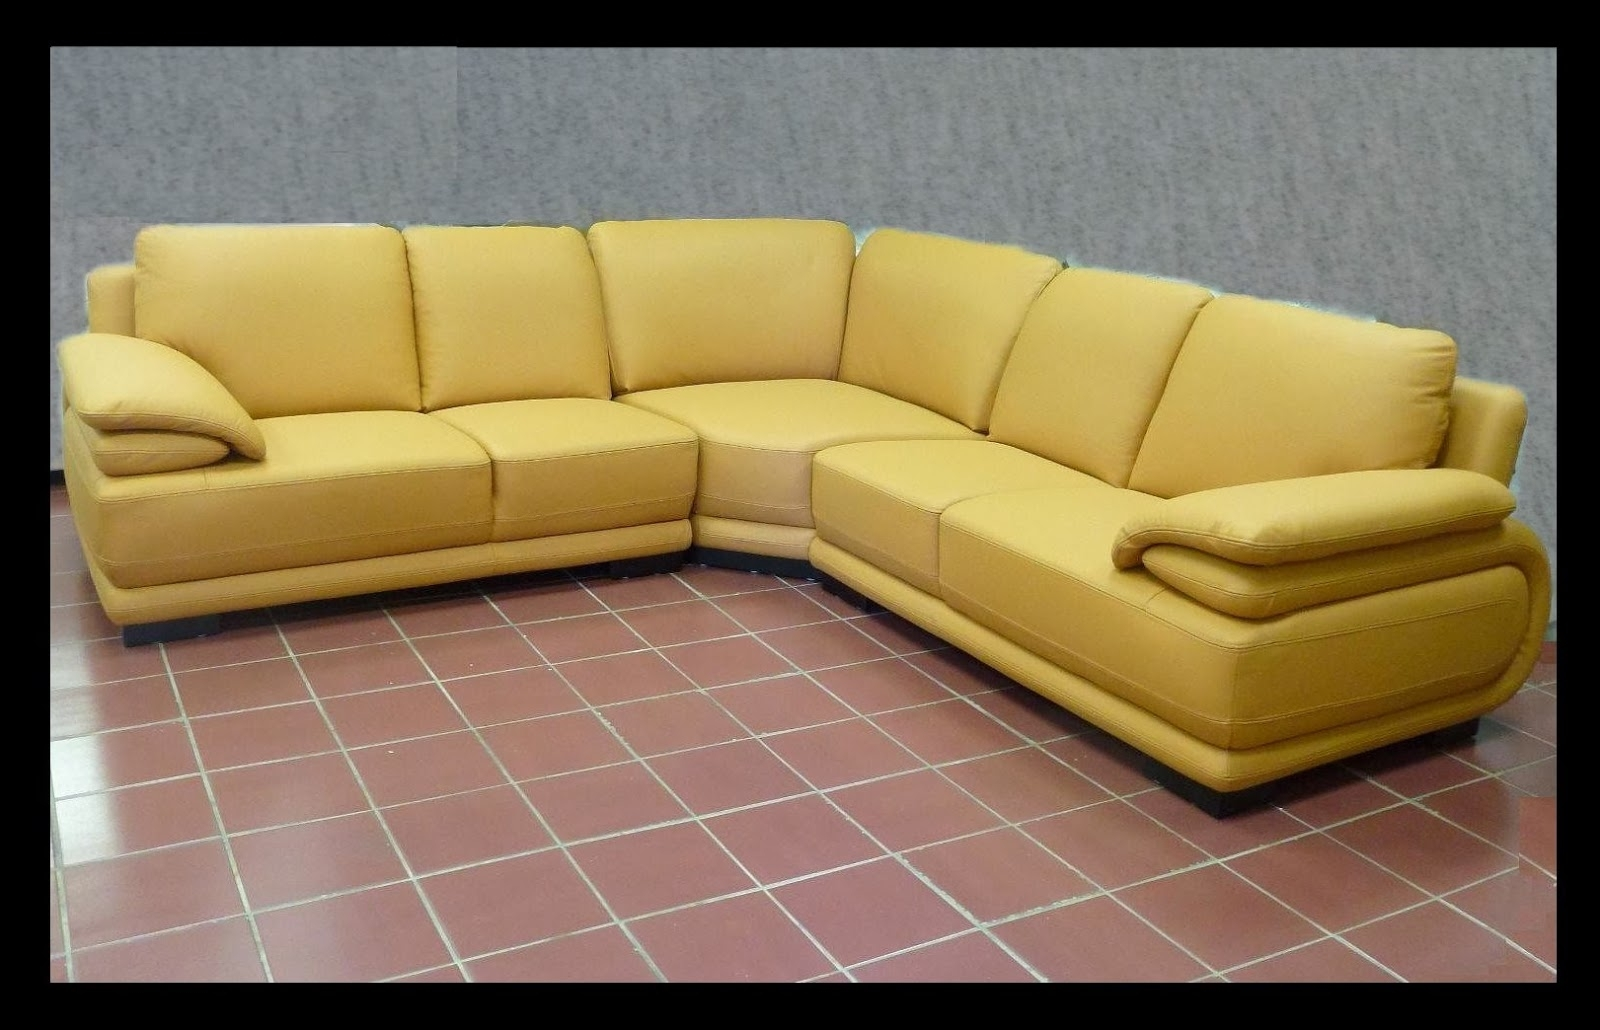 Recent Ebay Sofa Sets For Sale Second Hand 2 Seater Leather Sofa Used Within Sectional Sofas At Ebay (View 9 of 20)